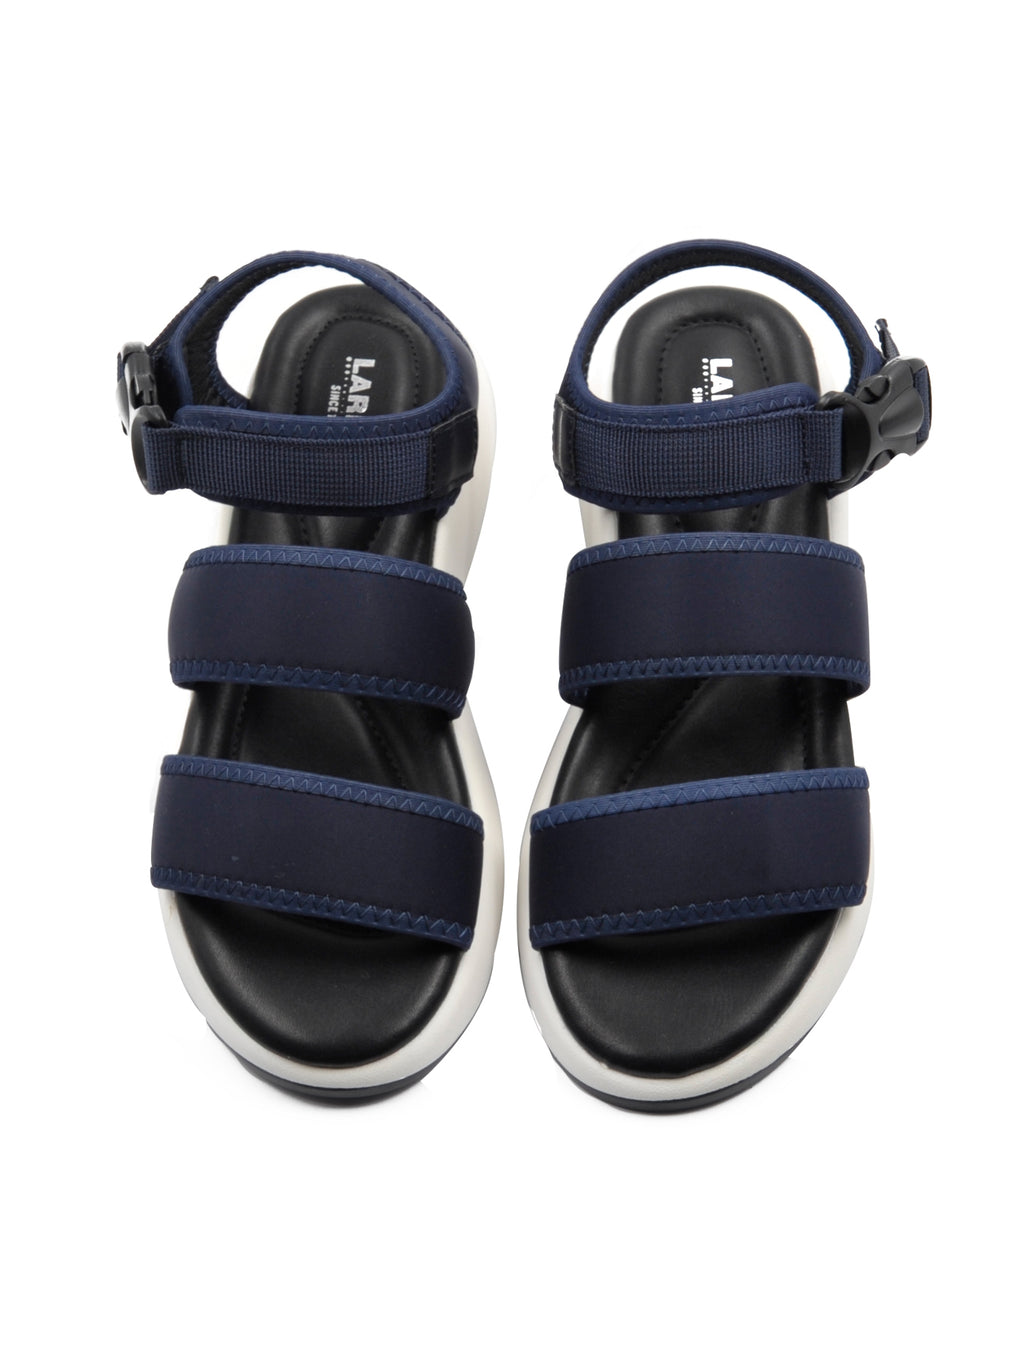 Larrie Navy Stylist Adjustable Buckle Comfortable Sandals